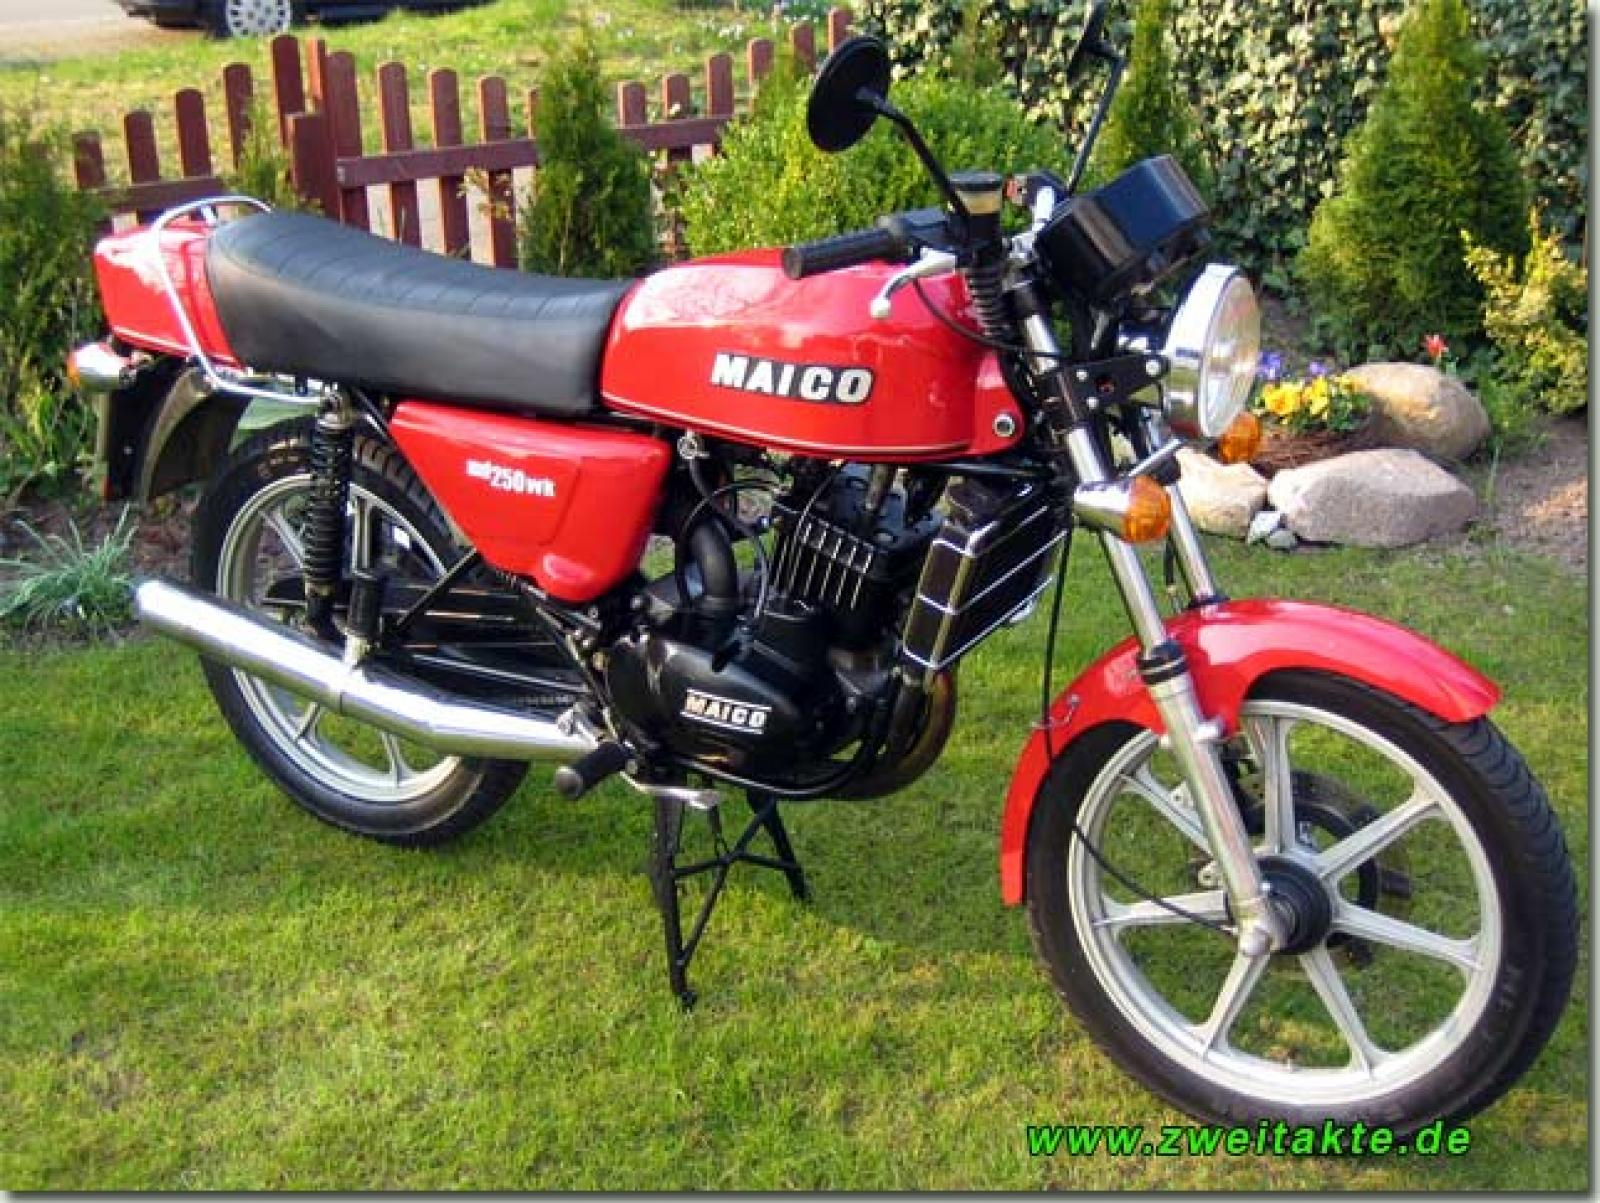 Maico MD 250 1971 images #102819